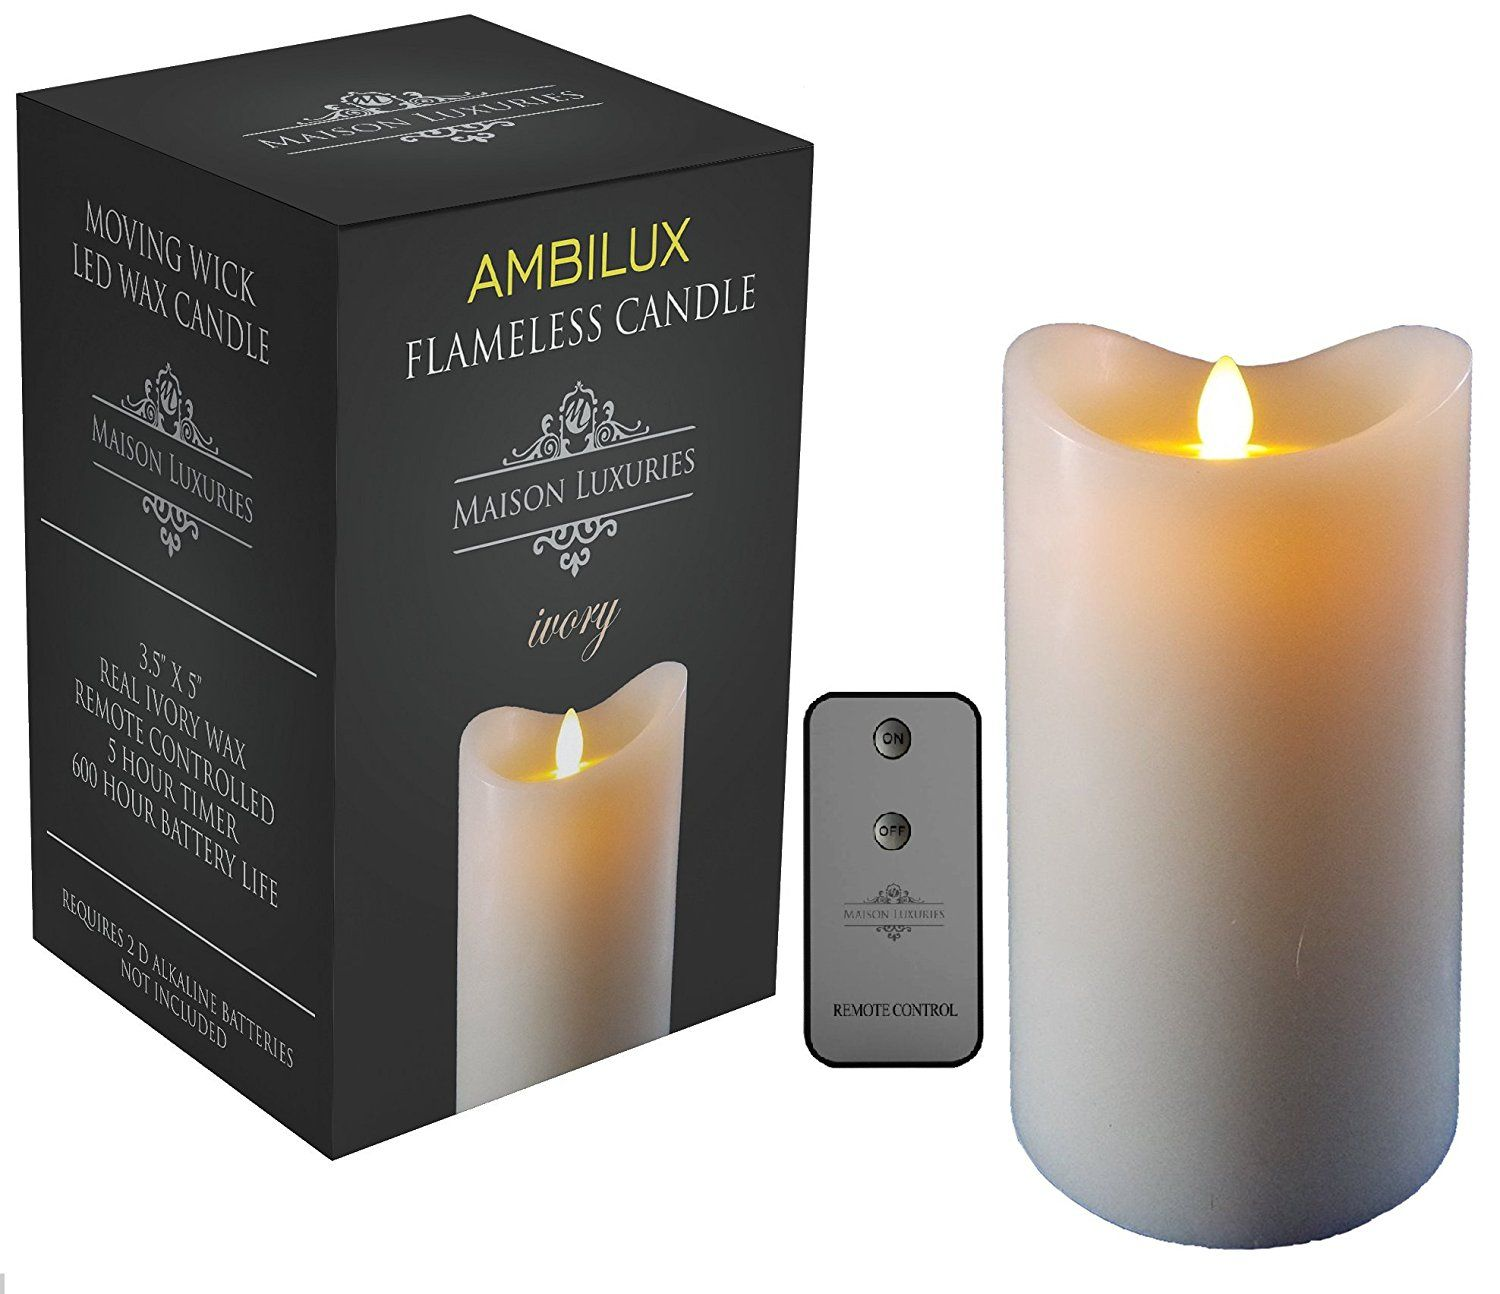 Ambilux by maison luxuries high quality moving wick unscented